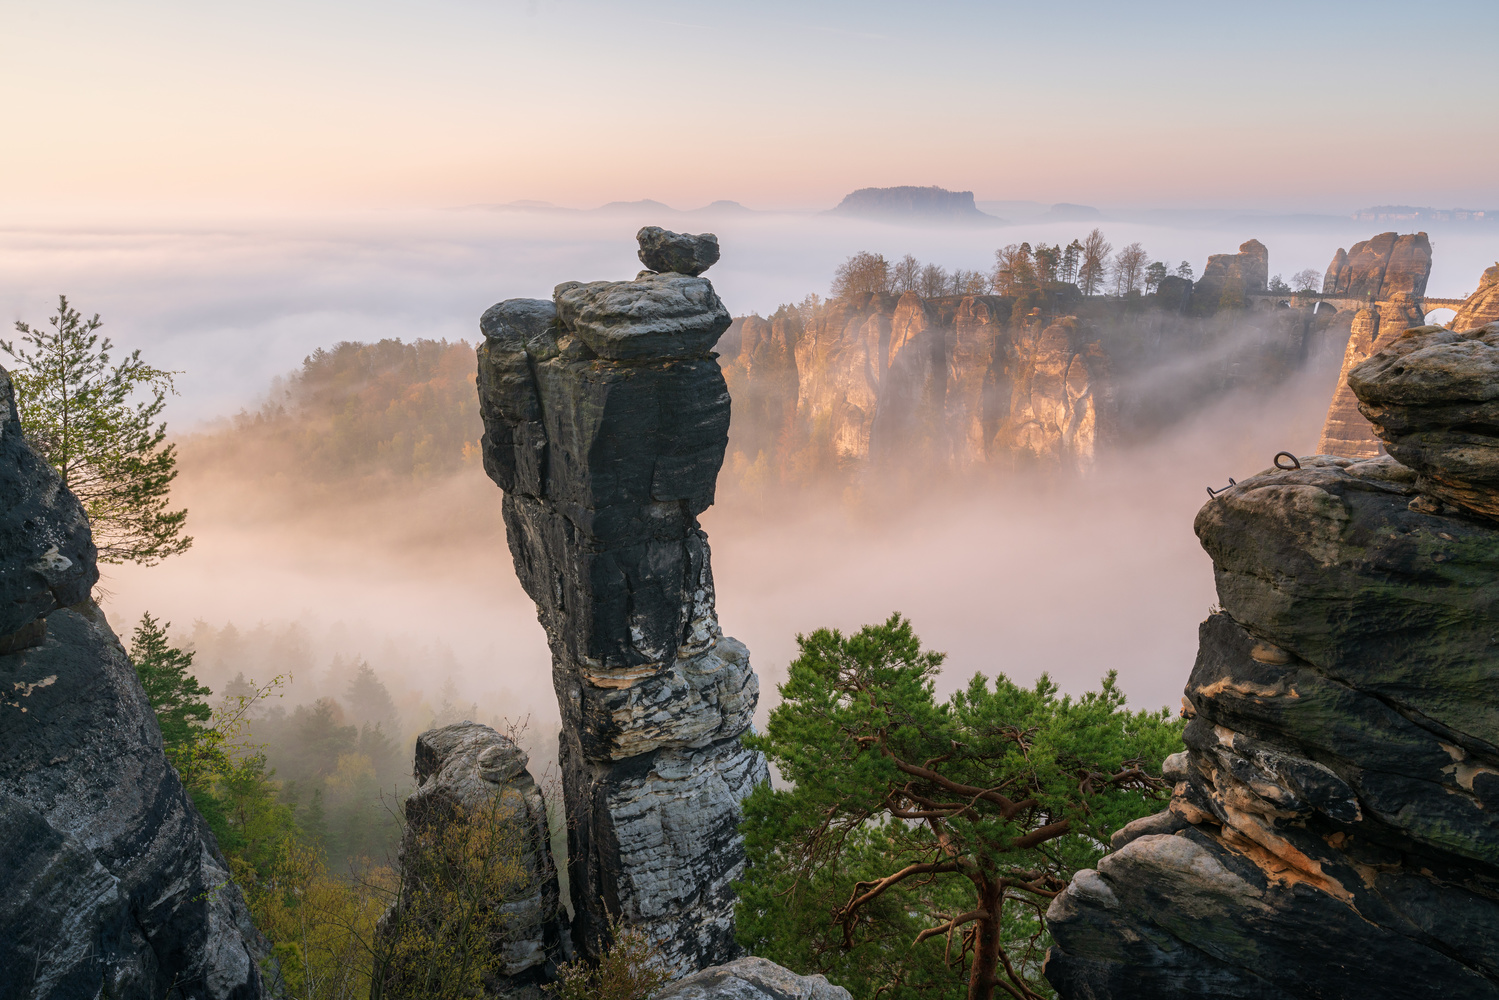 Foggy morning by Klaus Axelsen